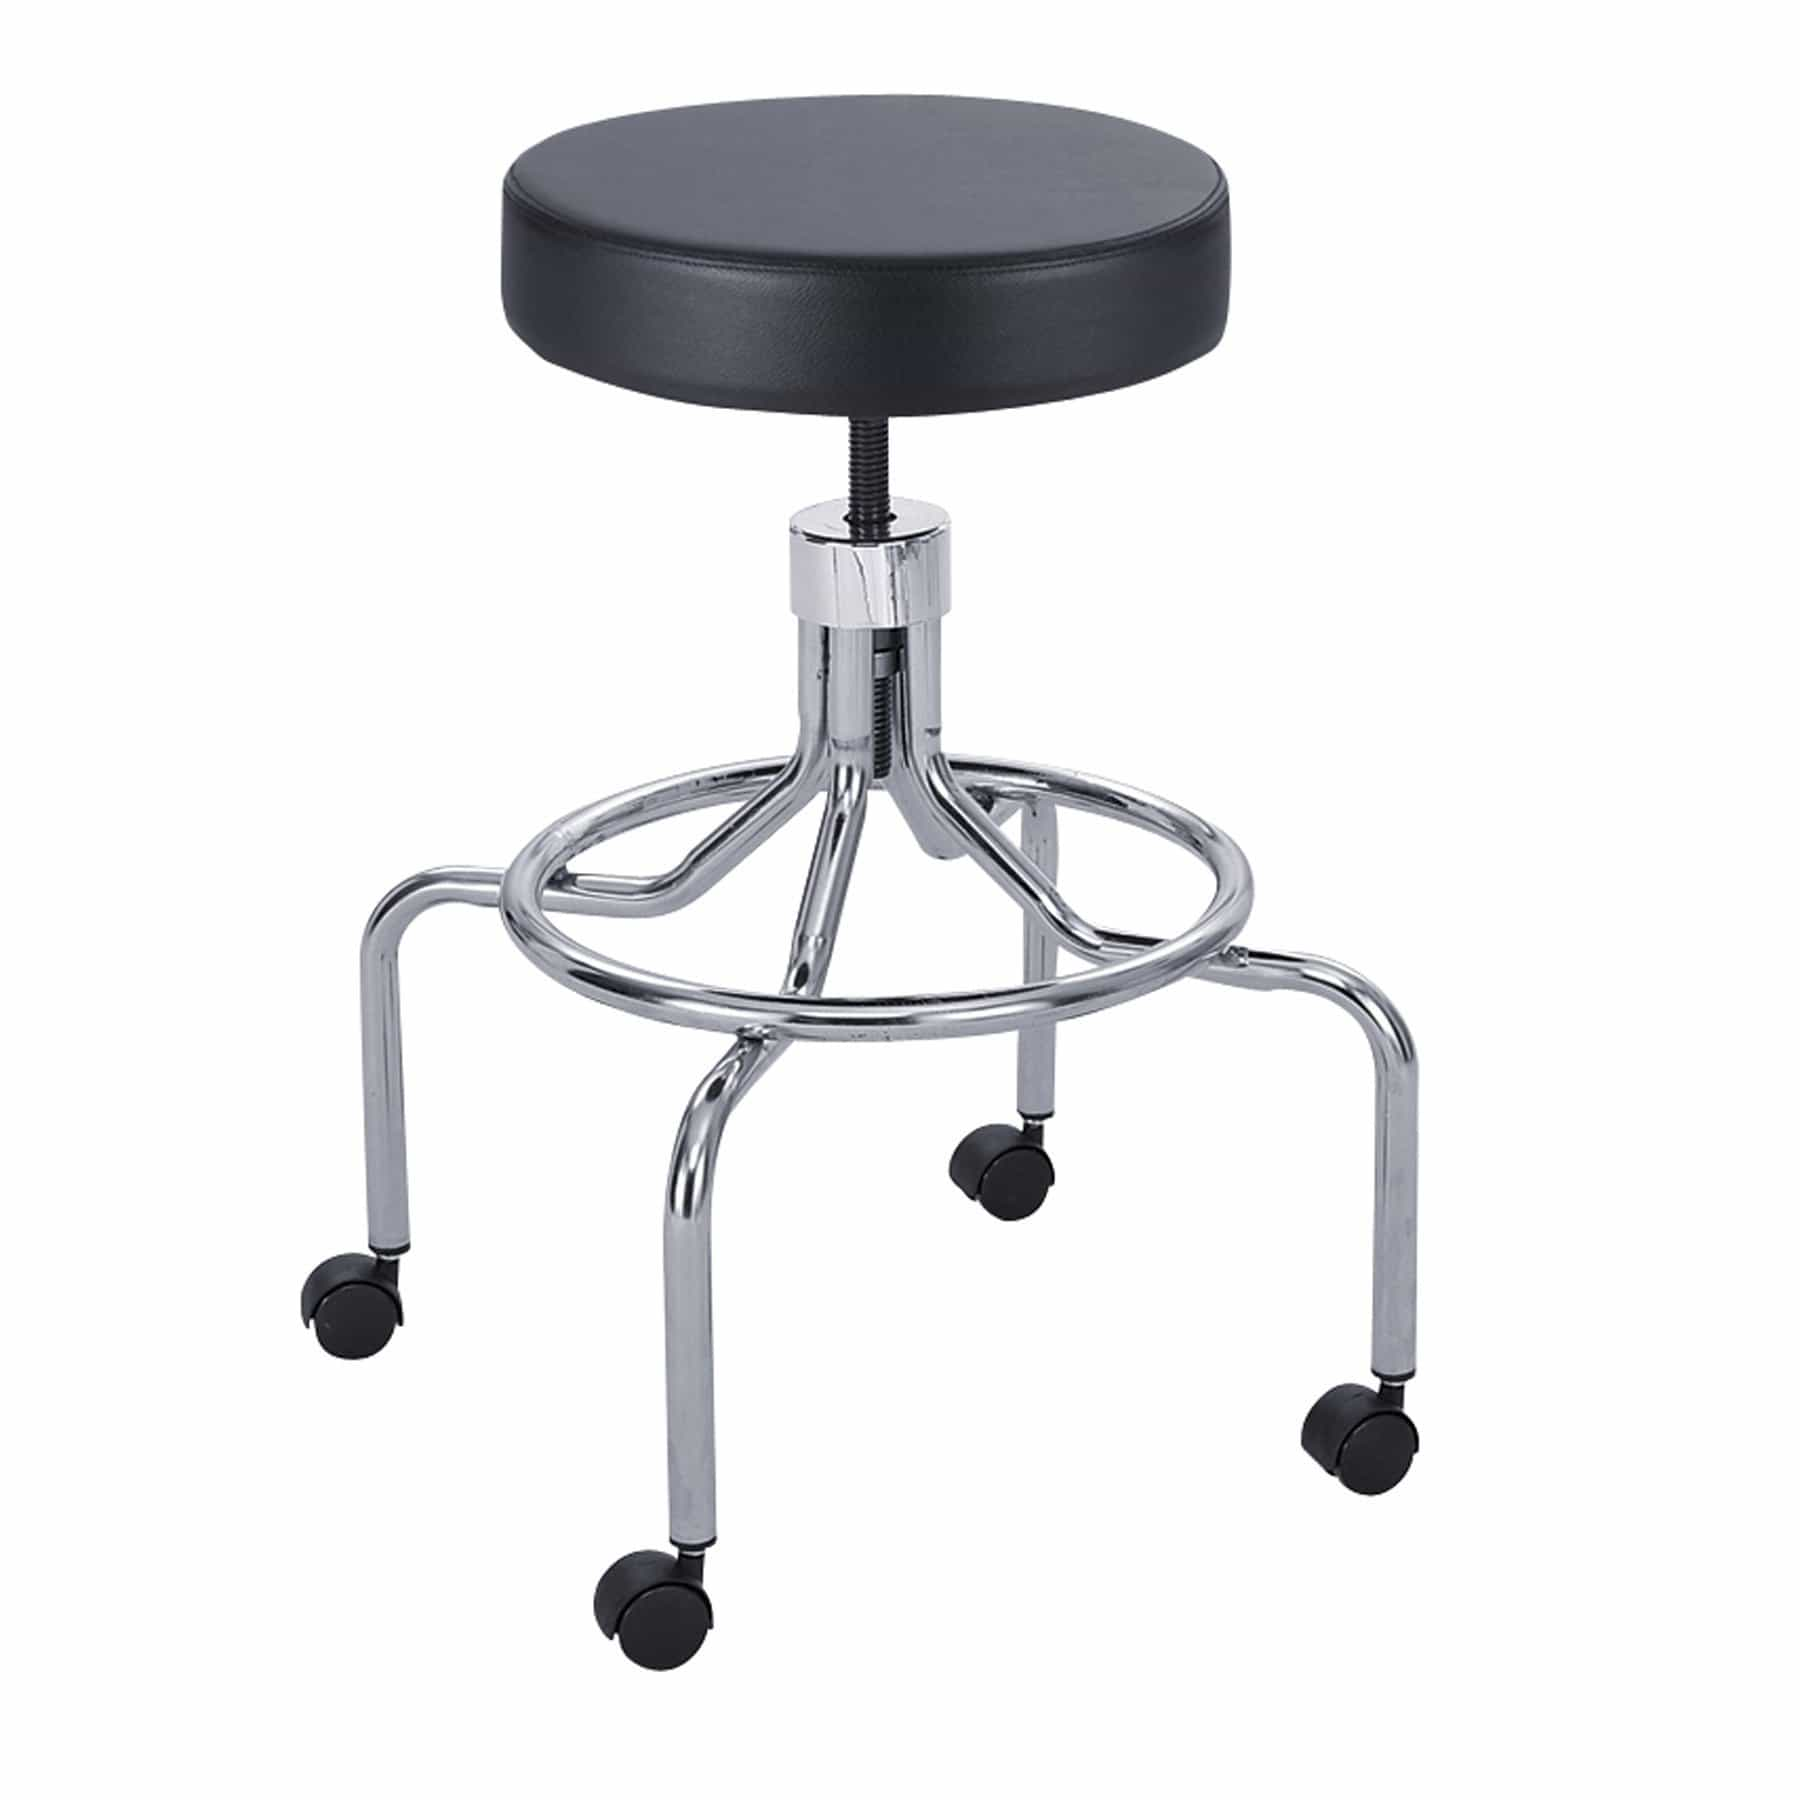 bedinhome - 3433BL Comfortable 250 lbs Weight Capacity Seat Height Adjustment Black Rolling Lab Stool with Screw Lift High Base - Safco - Lab Stool